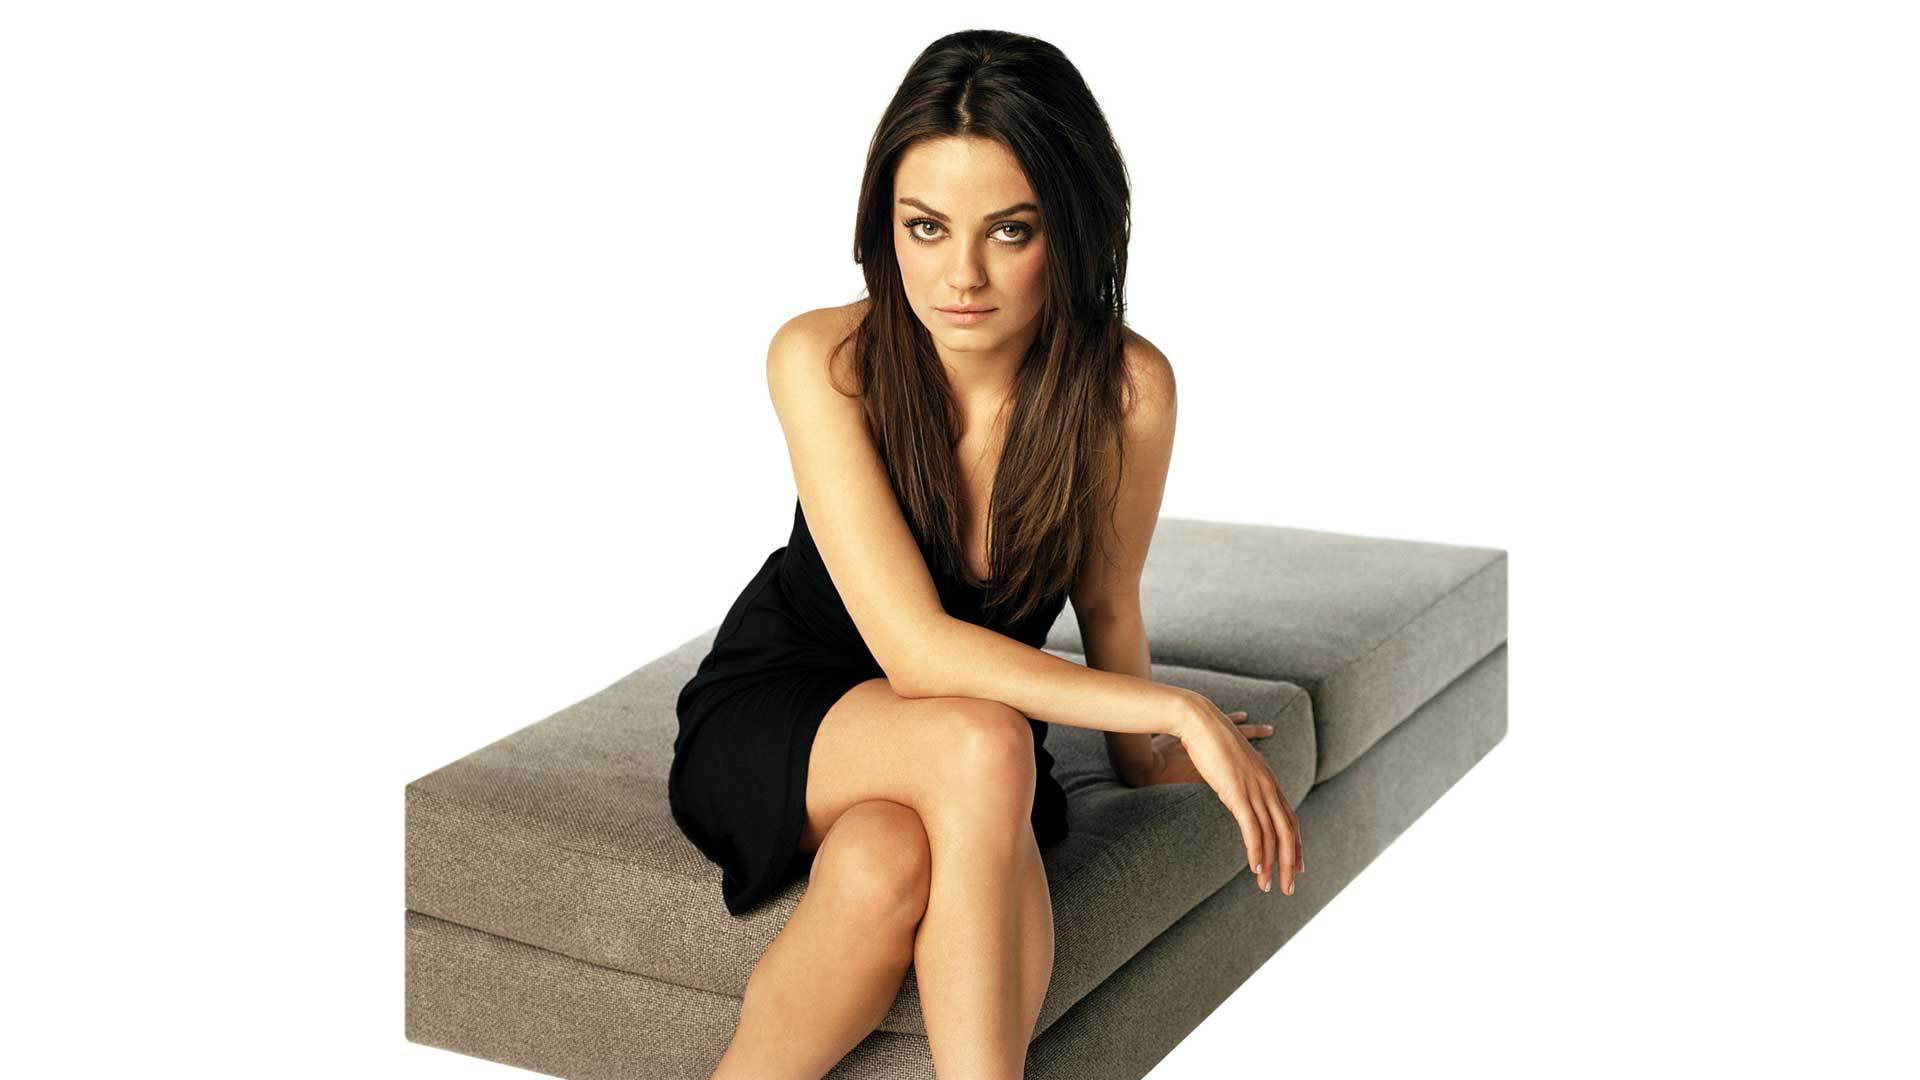 mila kunis wallpapers images photos pictures backgrounds